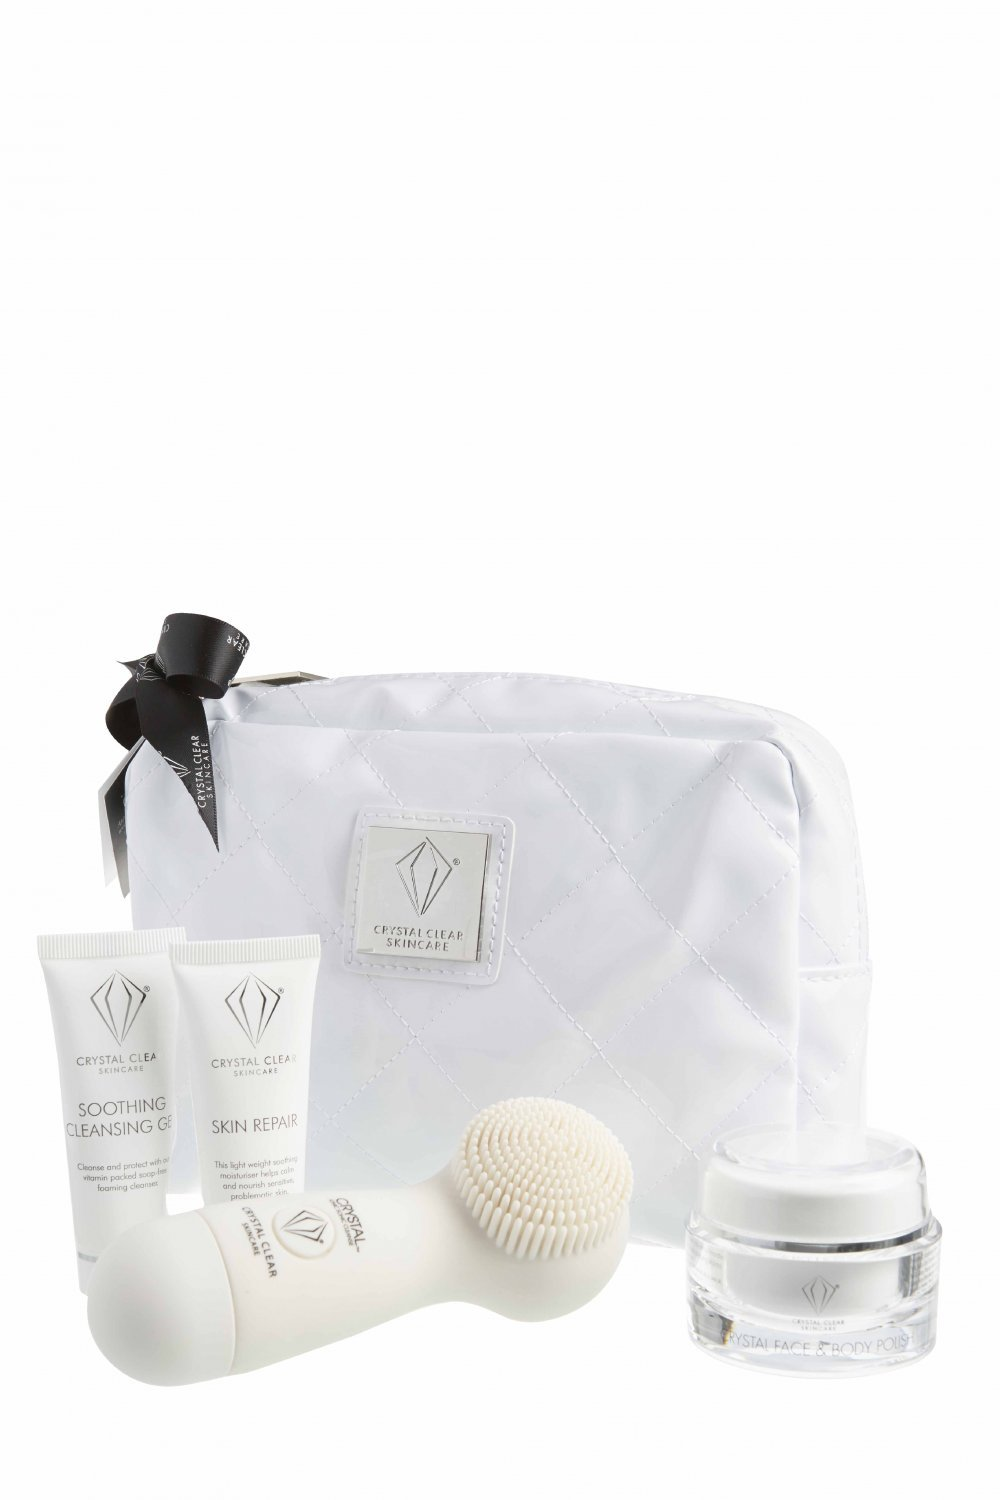 microdermabrasion in a bag